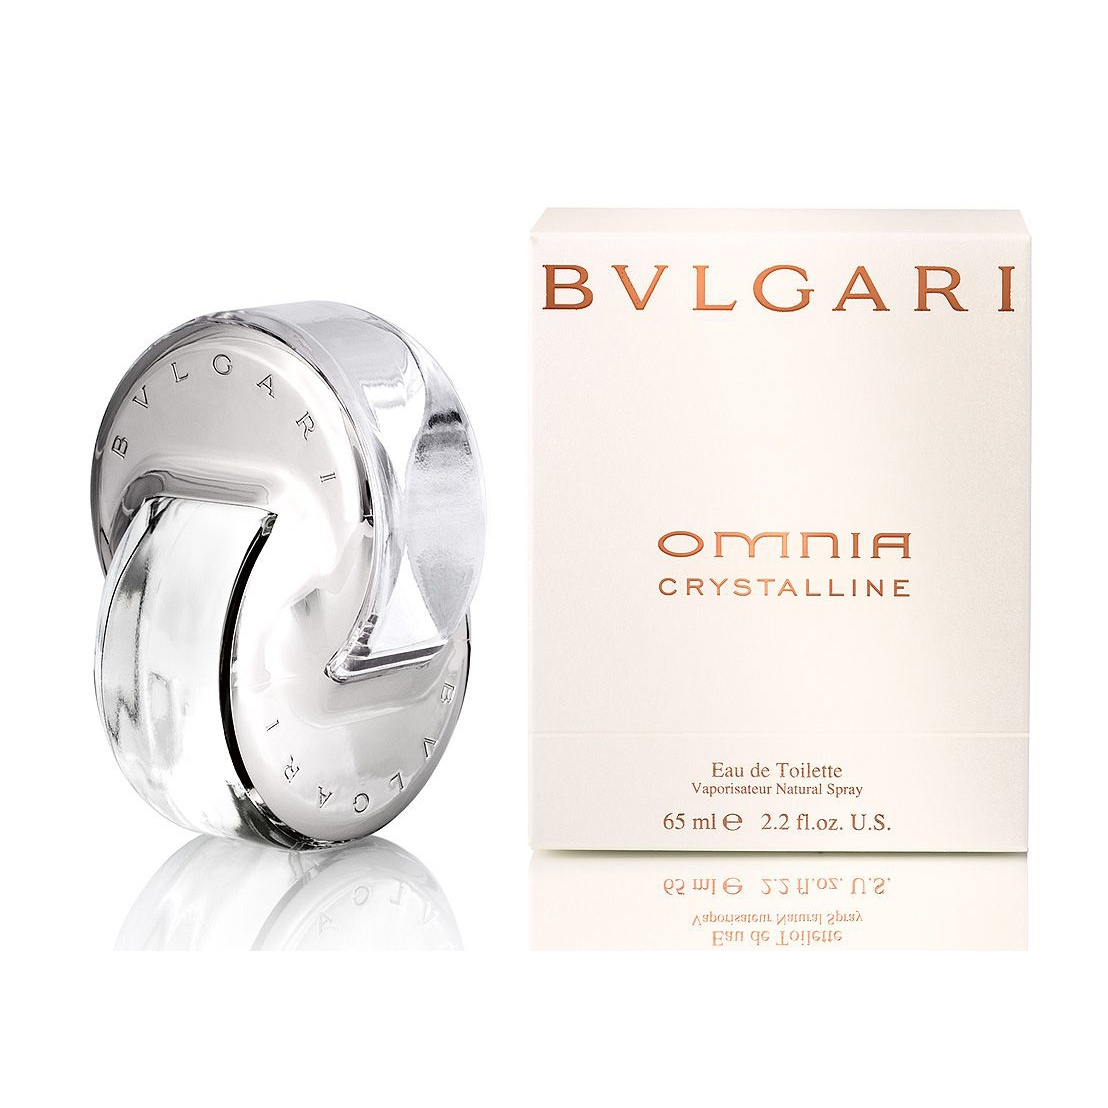 Bulgari Omnia Crystalline eau de toilette spray donna 65 ml